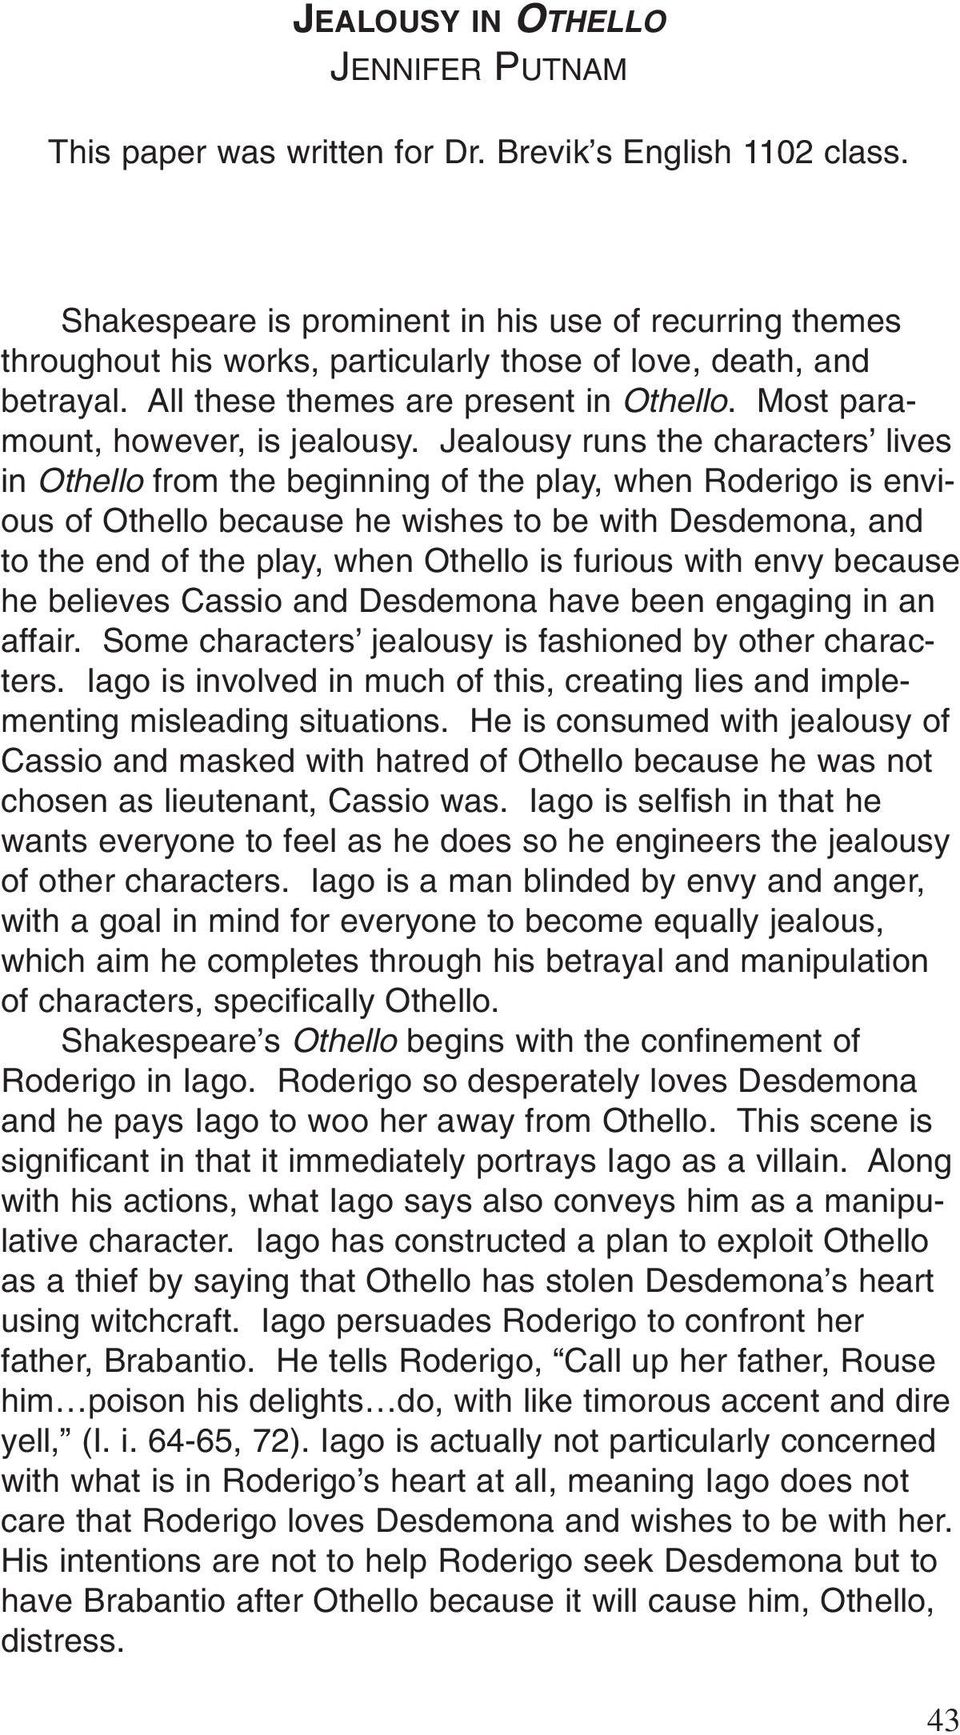 othello a play that transcends time essay William shakespeare - othello - a play that transcends time.